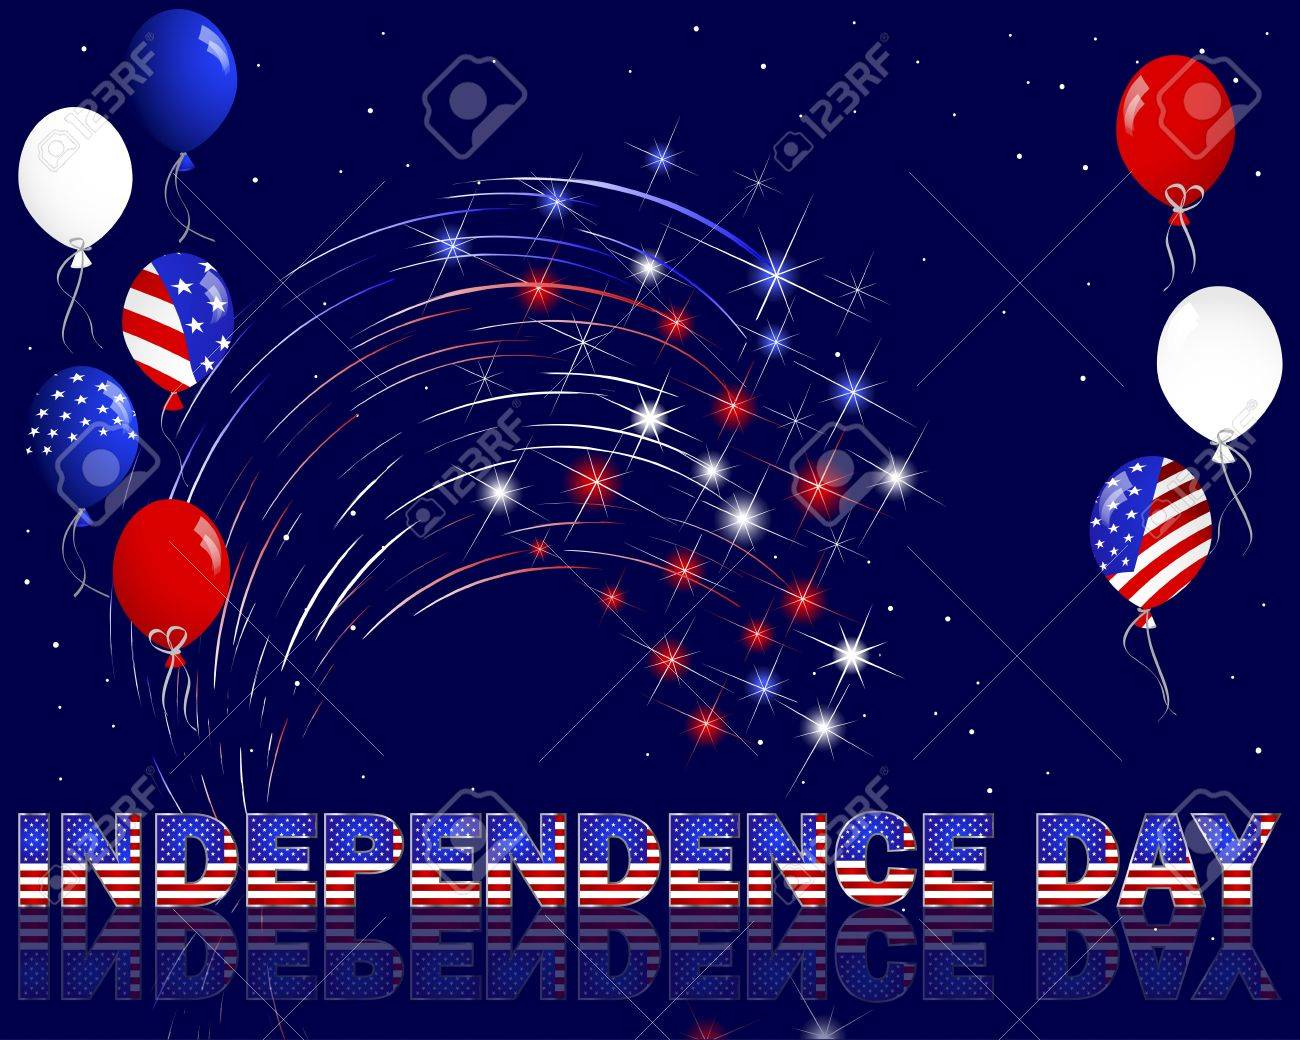 Independence Day  Celebratory background with a beautiful text, fireworks and balloons  10 EPS  Vector illustration Stock Vector - 14169605